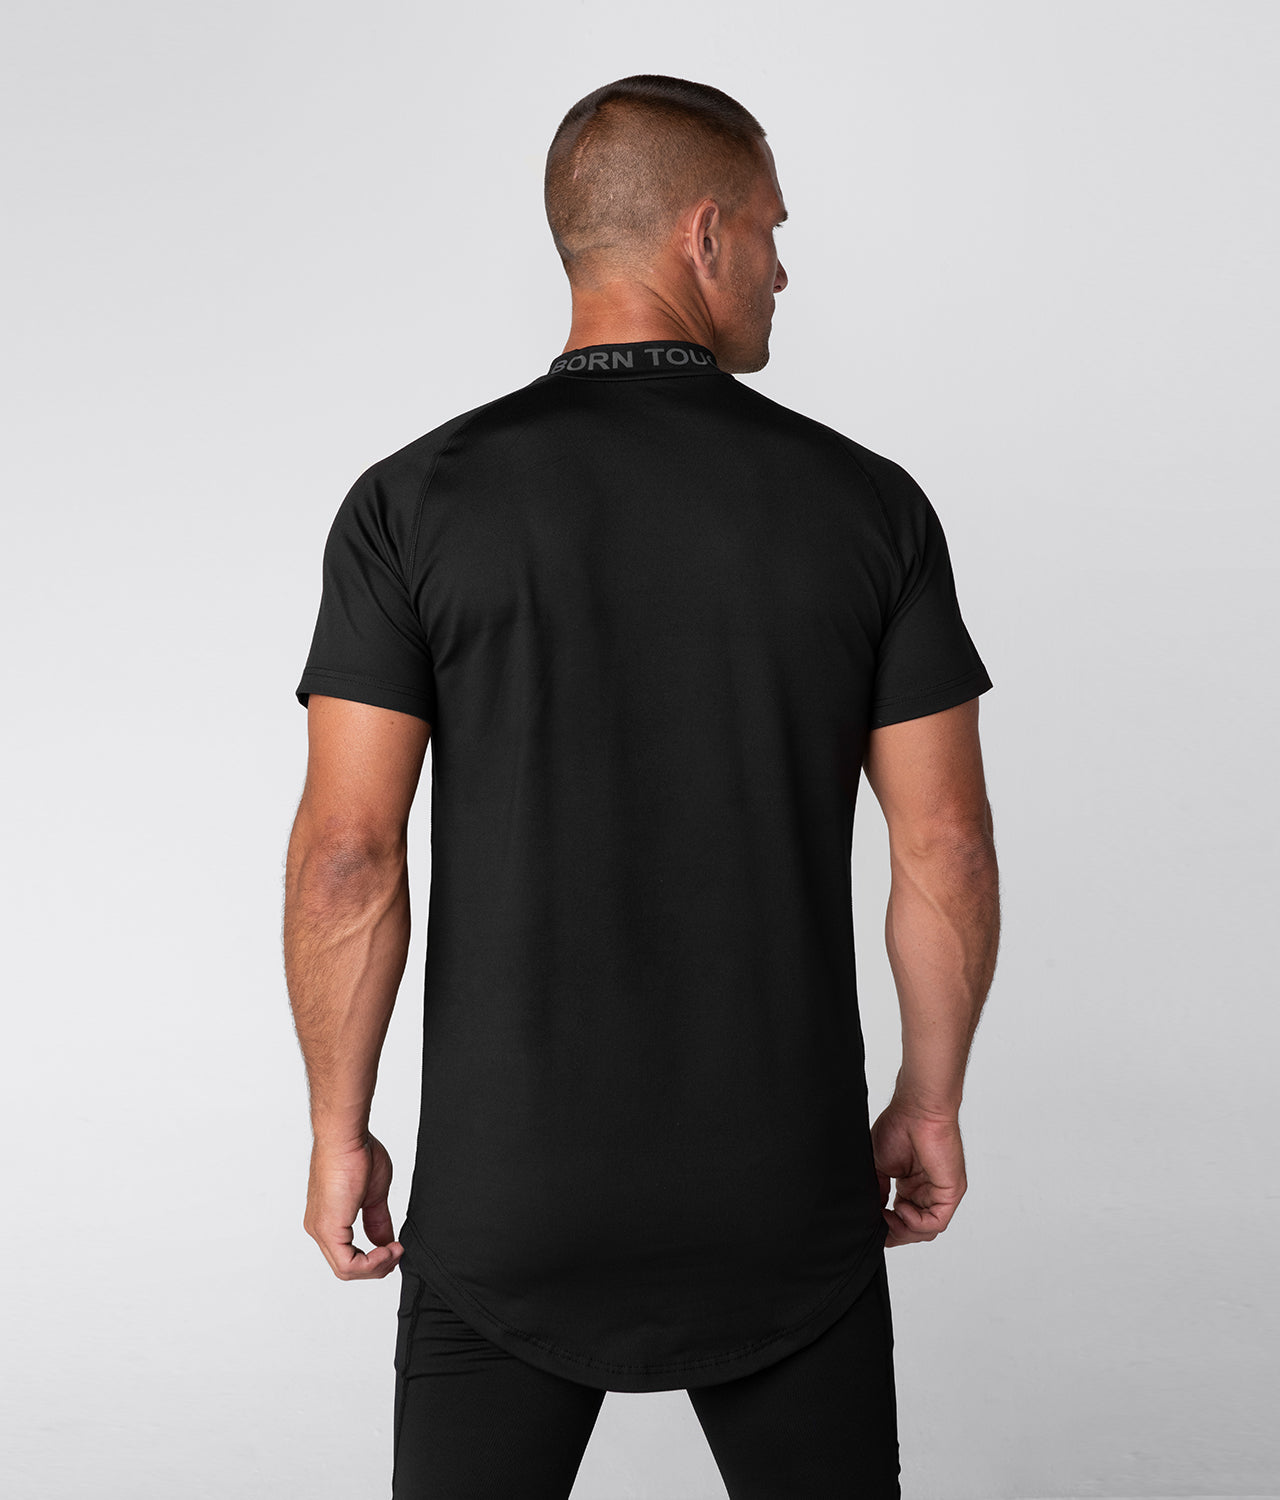 Born Tough Mock Neck Longitudinal Elasticity Short Sleeve Compression Gym Workout Shirt For Men Black